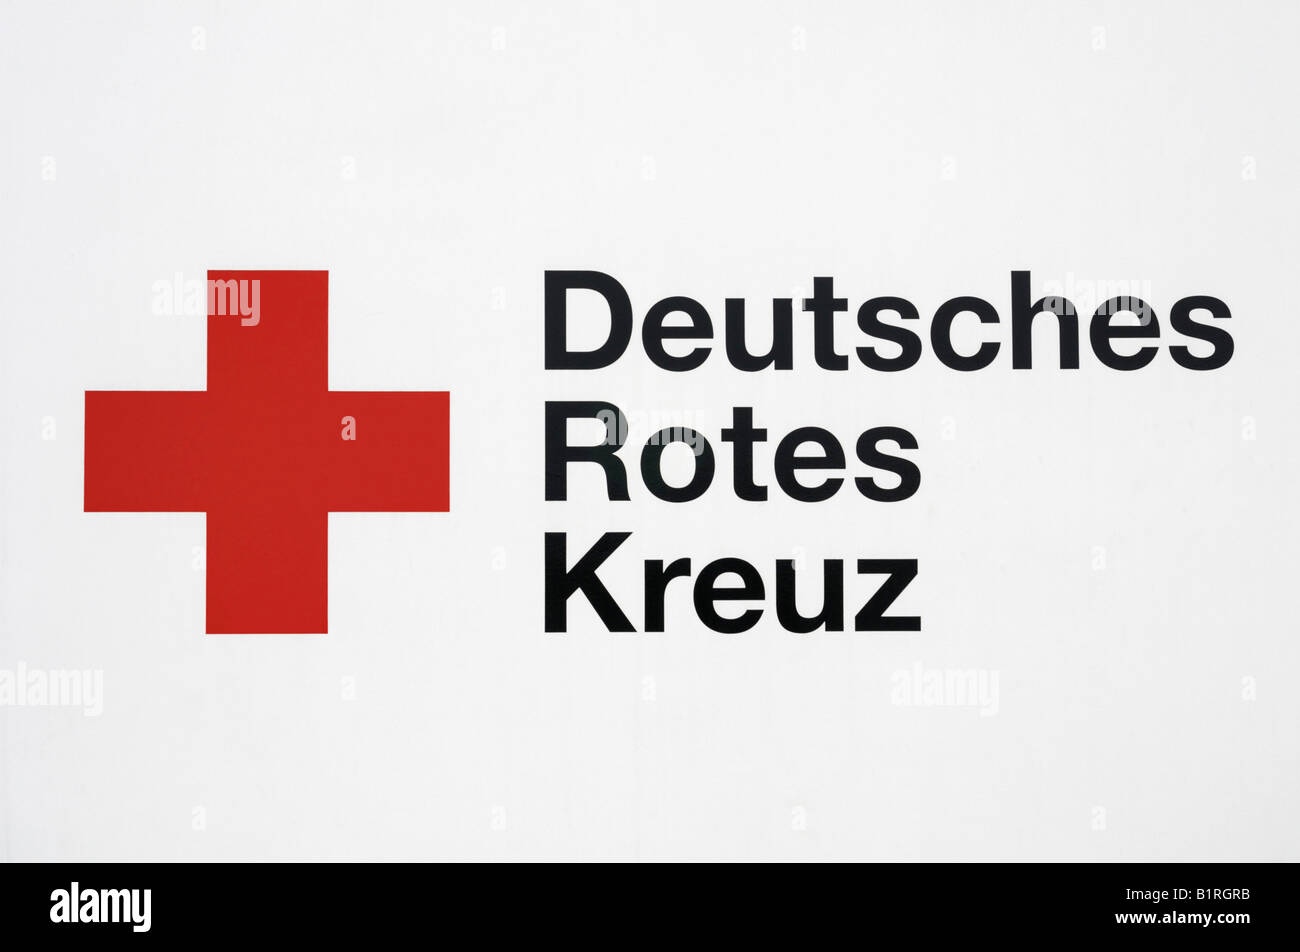 Emblem and lettering of Deutsches Rotes Kreuz, German Red Cross - Stock Image